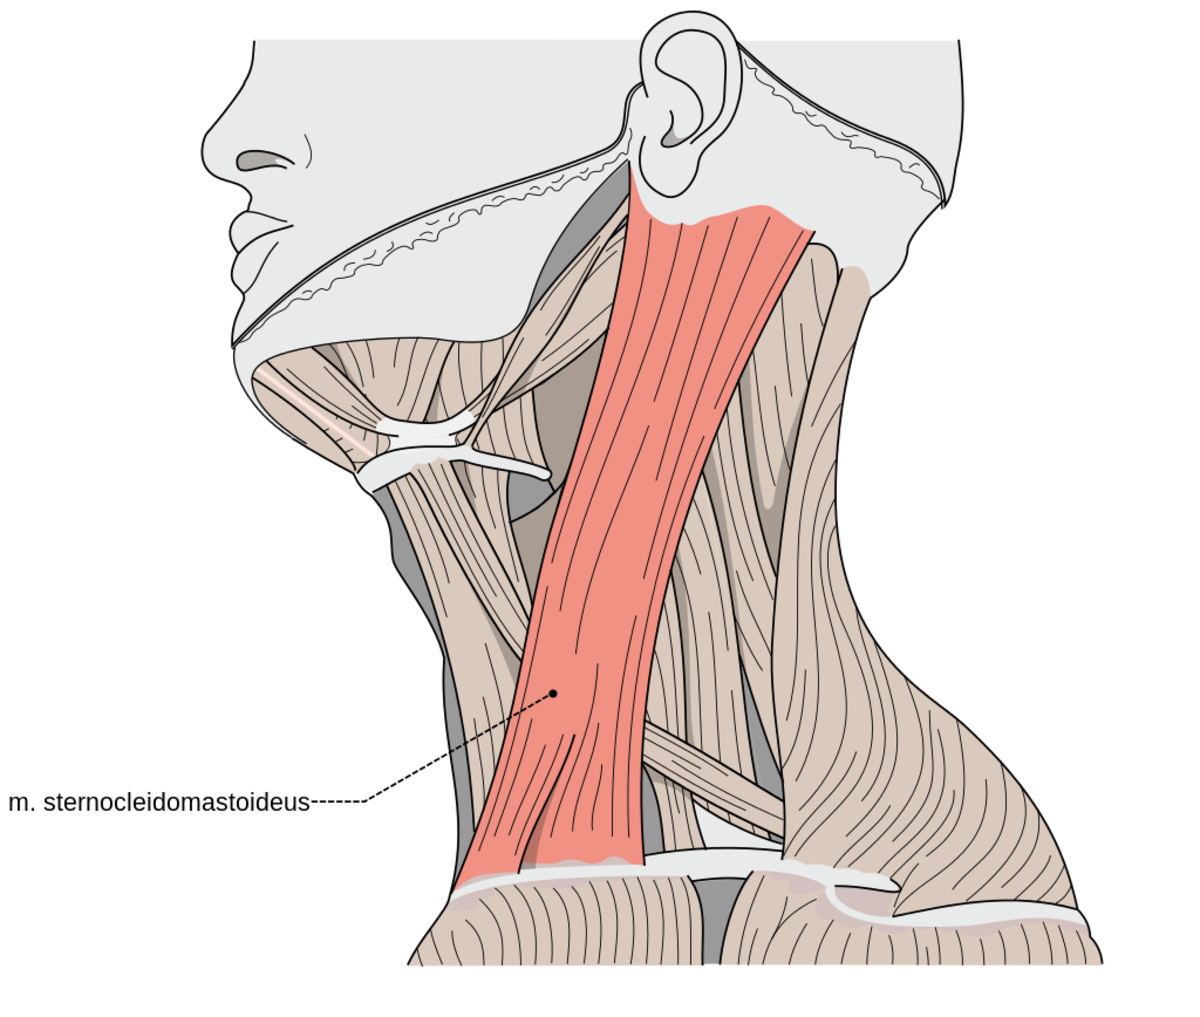 The Sternocleidomastoid Muscle - a culprit of widespread muscle pain